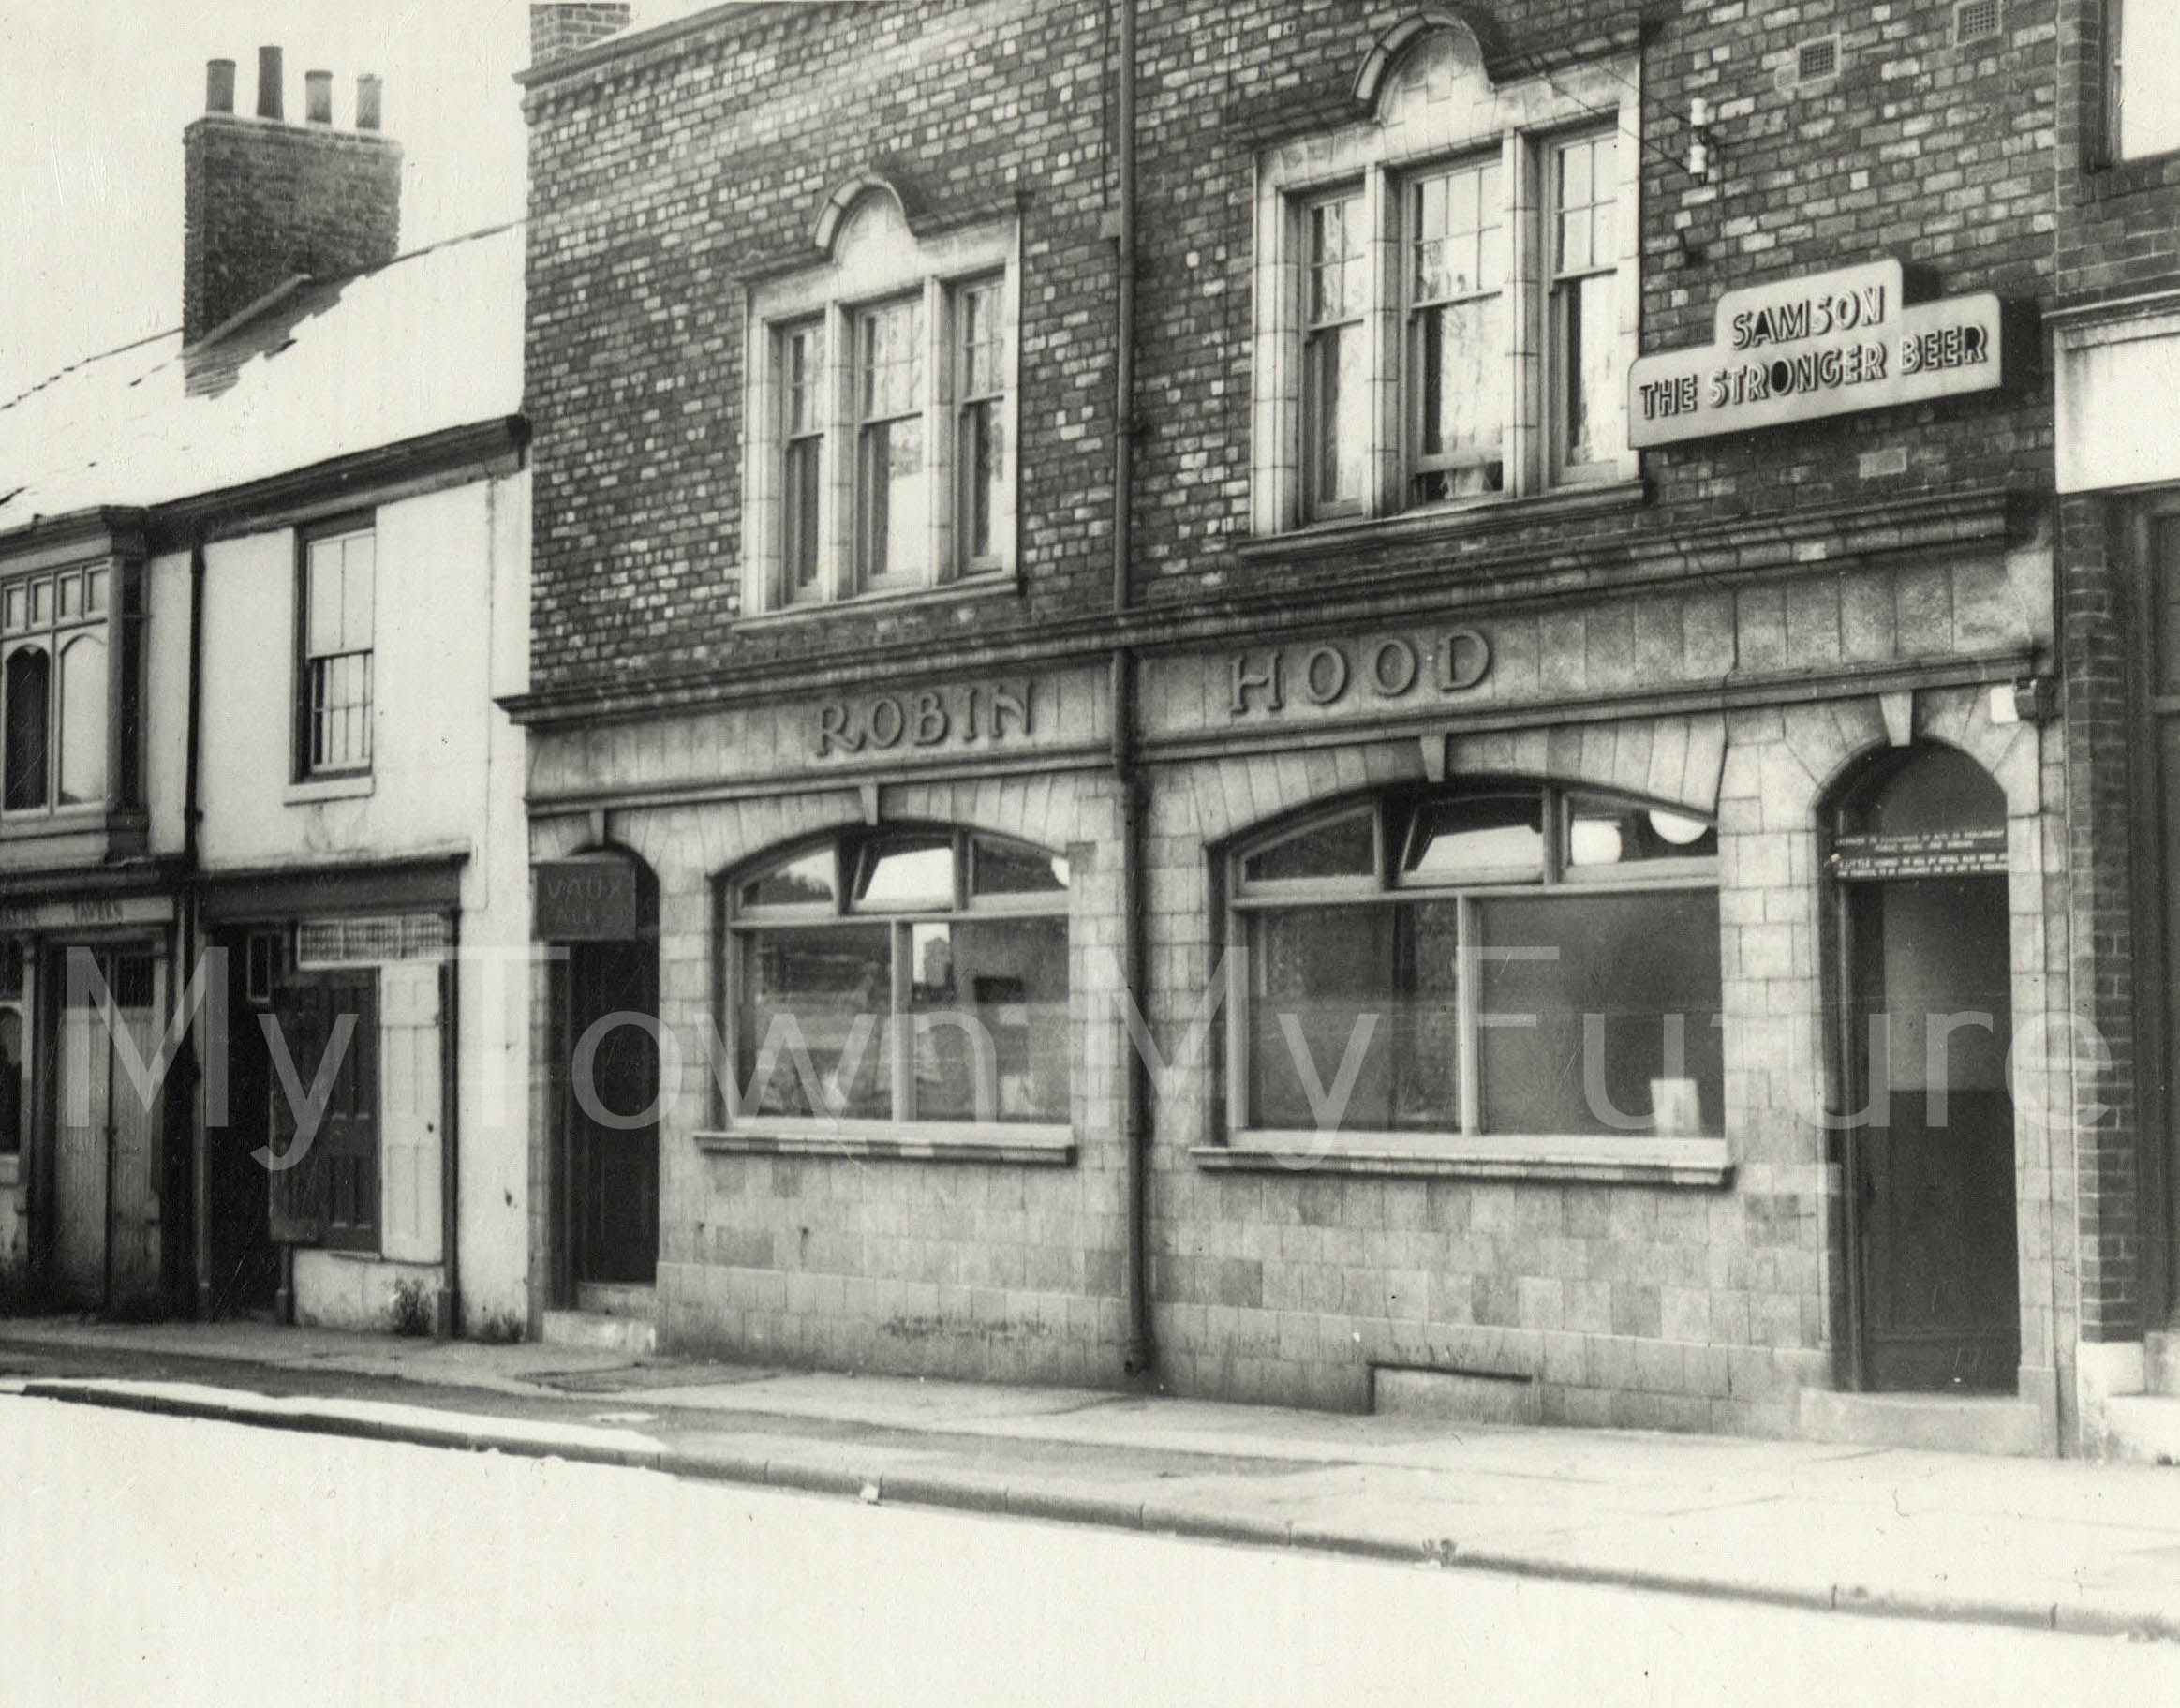 Robin Hood Hotel Commercial St_1963_Evening Gazette_